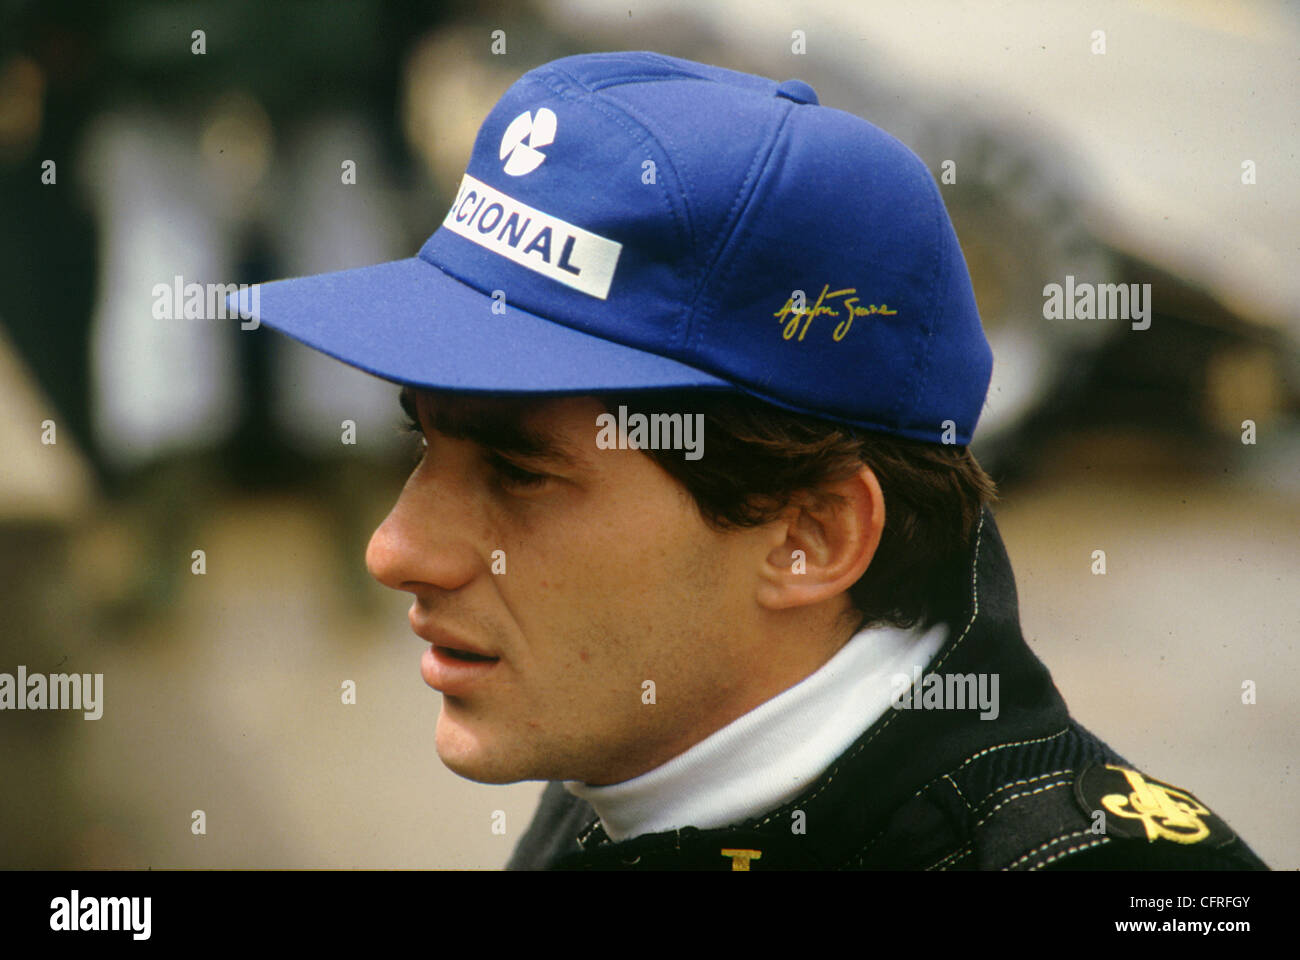 Ayrton Senna Lotus British Grand Prix de 1985 Imagen De Stock